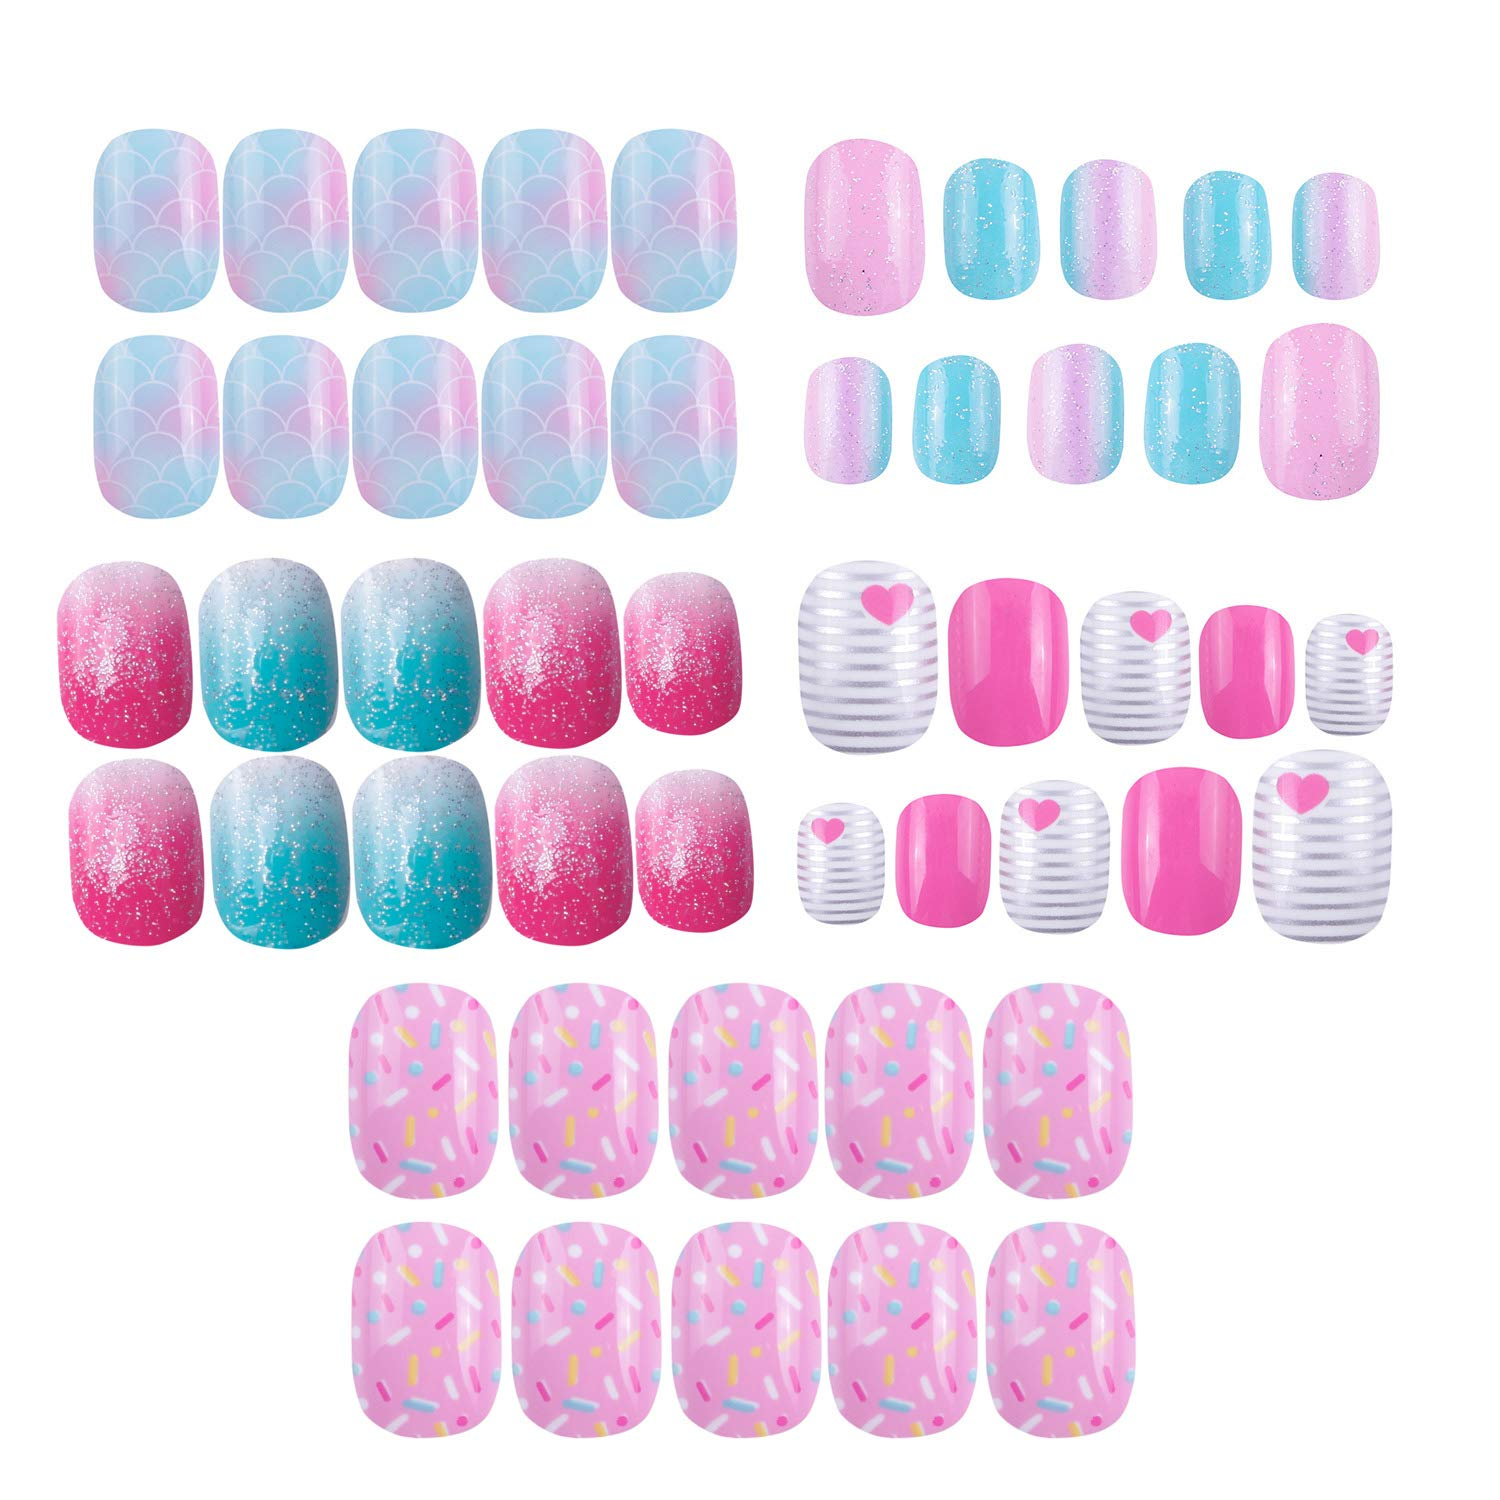 120 pcs 5 pack Children Nails Press on Pre-glue Full Cover Glitter Gradient Color Rainbow Short False Nail Kits Great Christmas Gift for Kids Little Girls - Multicolor Gradient Series by SIUSIO